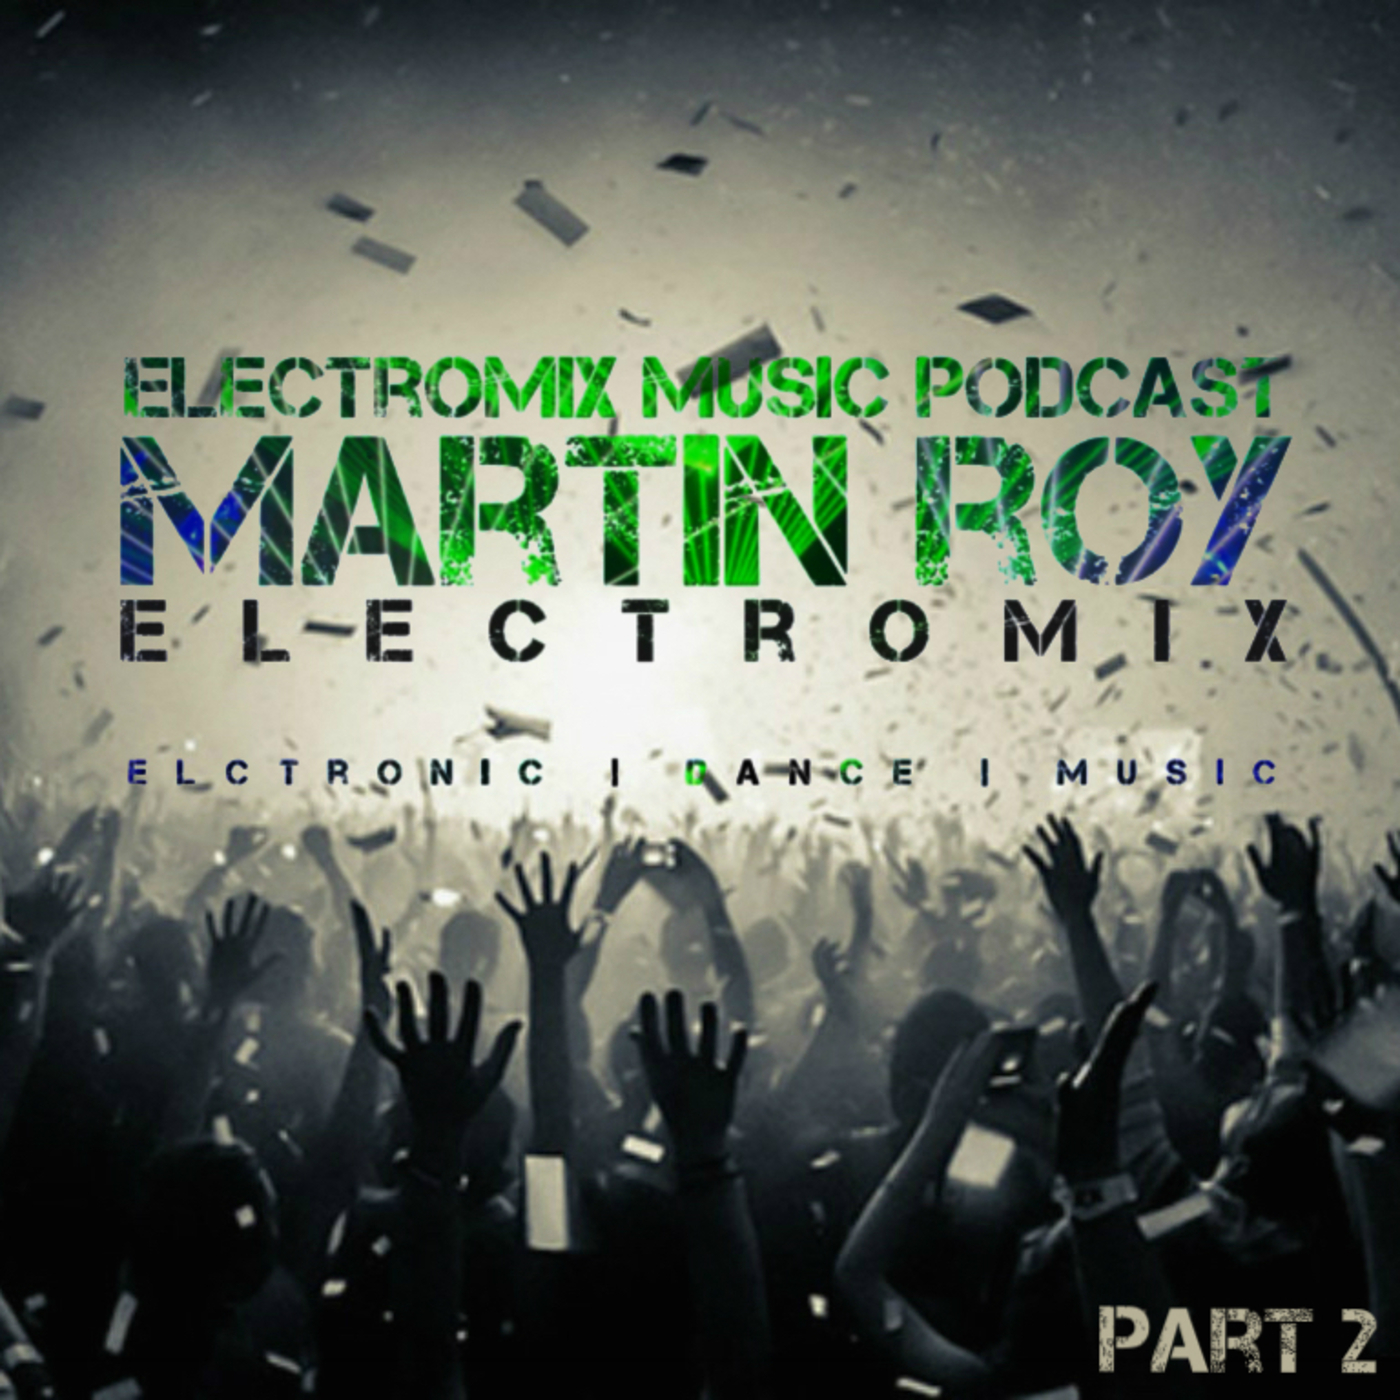 Electromix Music Podcast (Part 2)